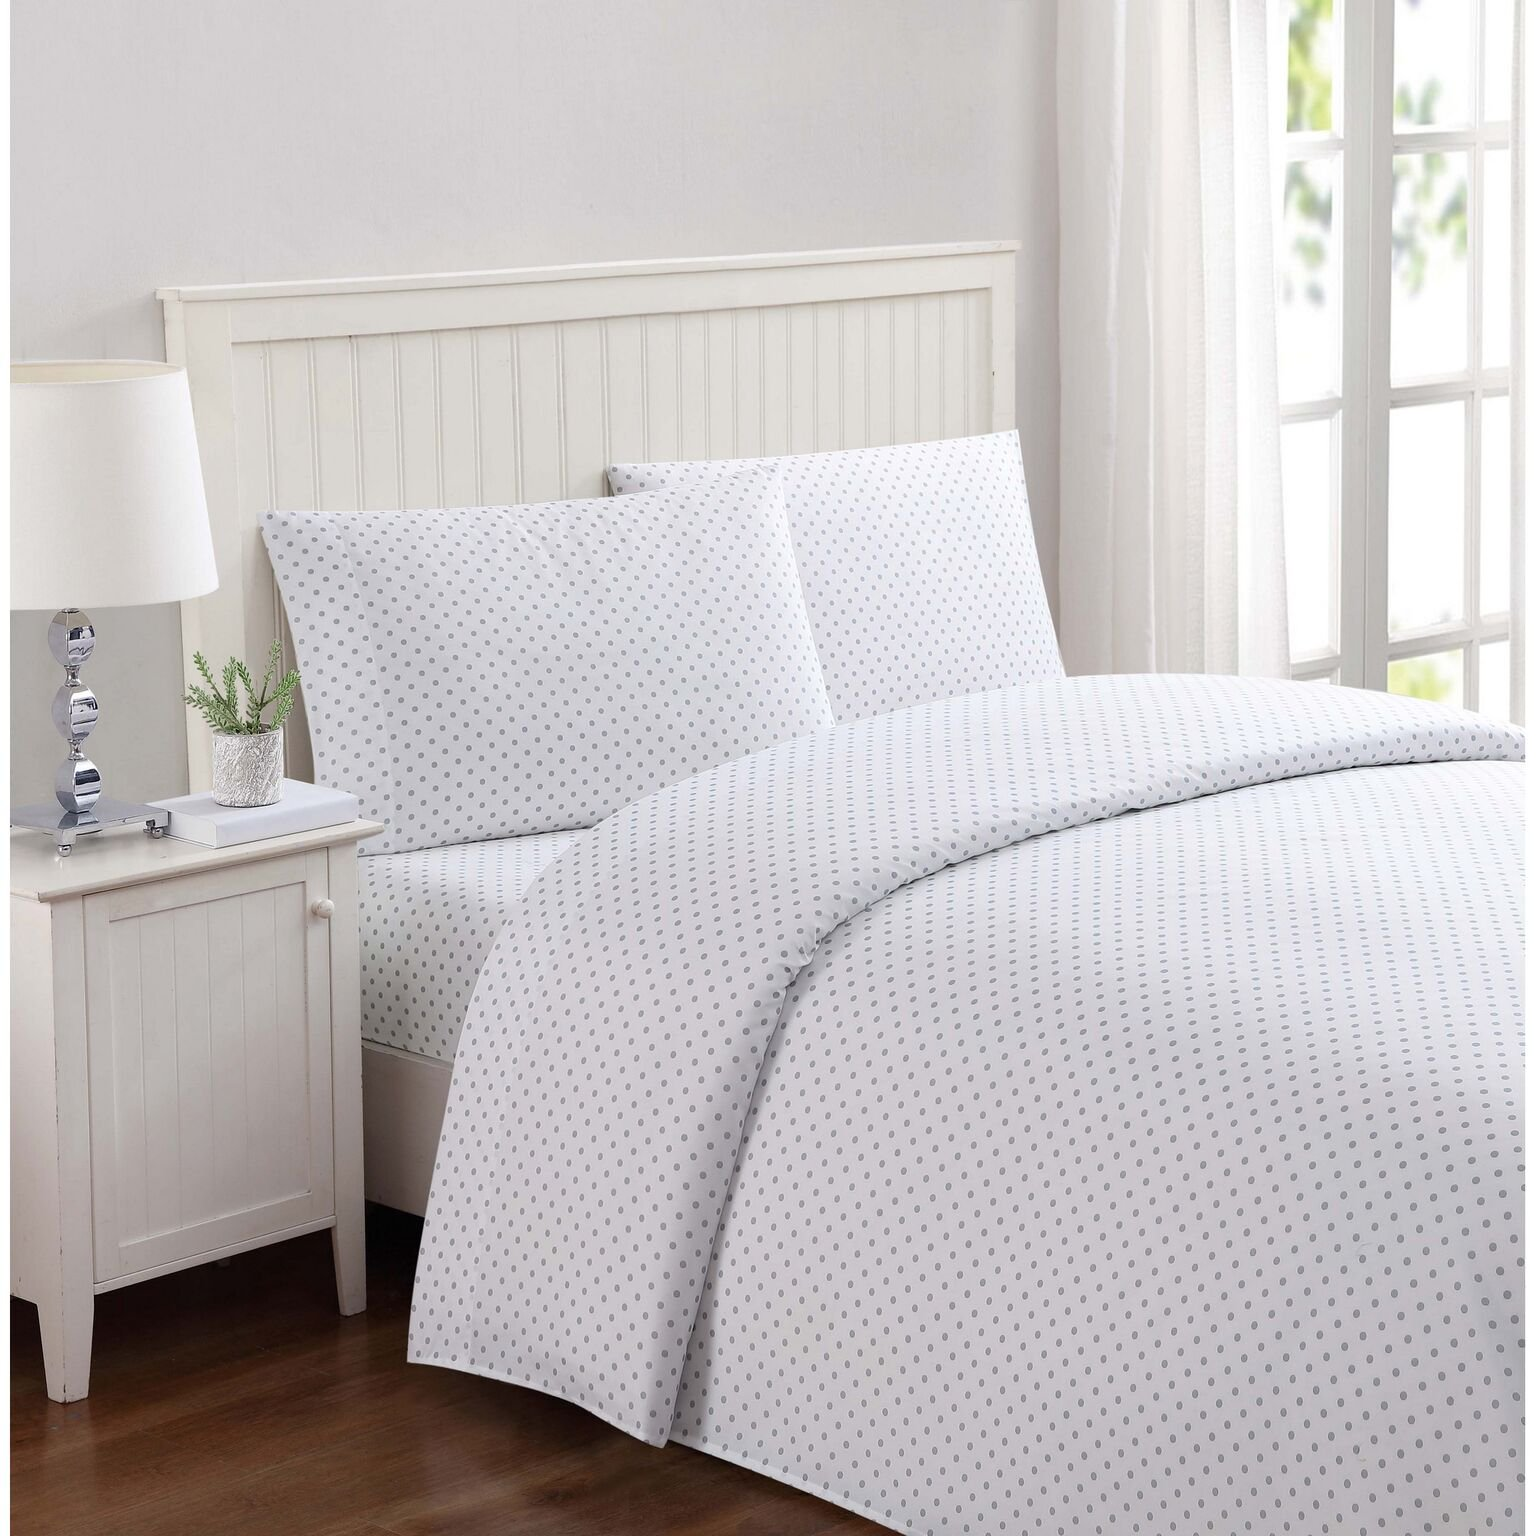 Truly Soft Everyday Printed Dot Sheet Set, Twin X-Large, White/Grey